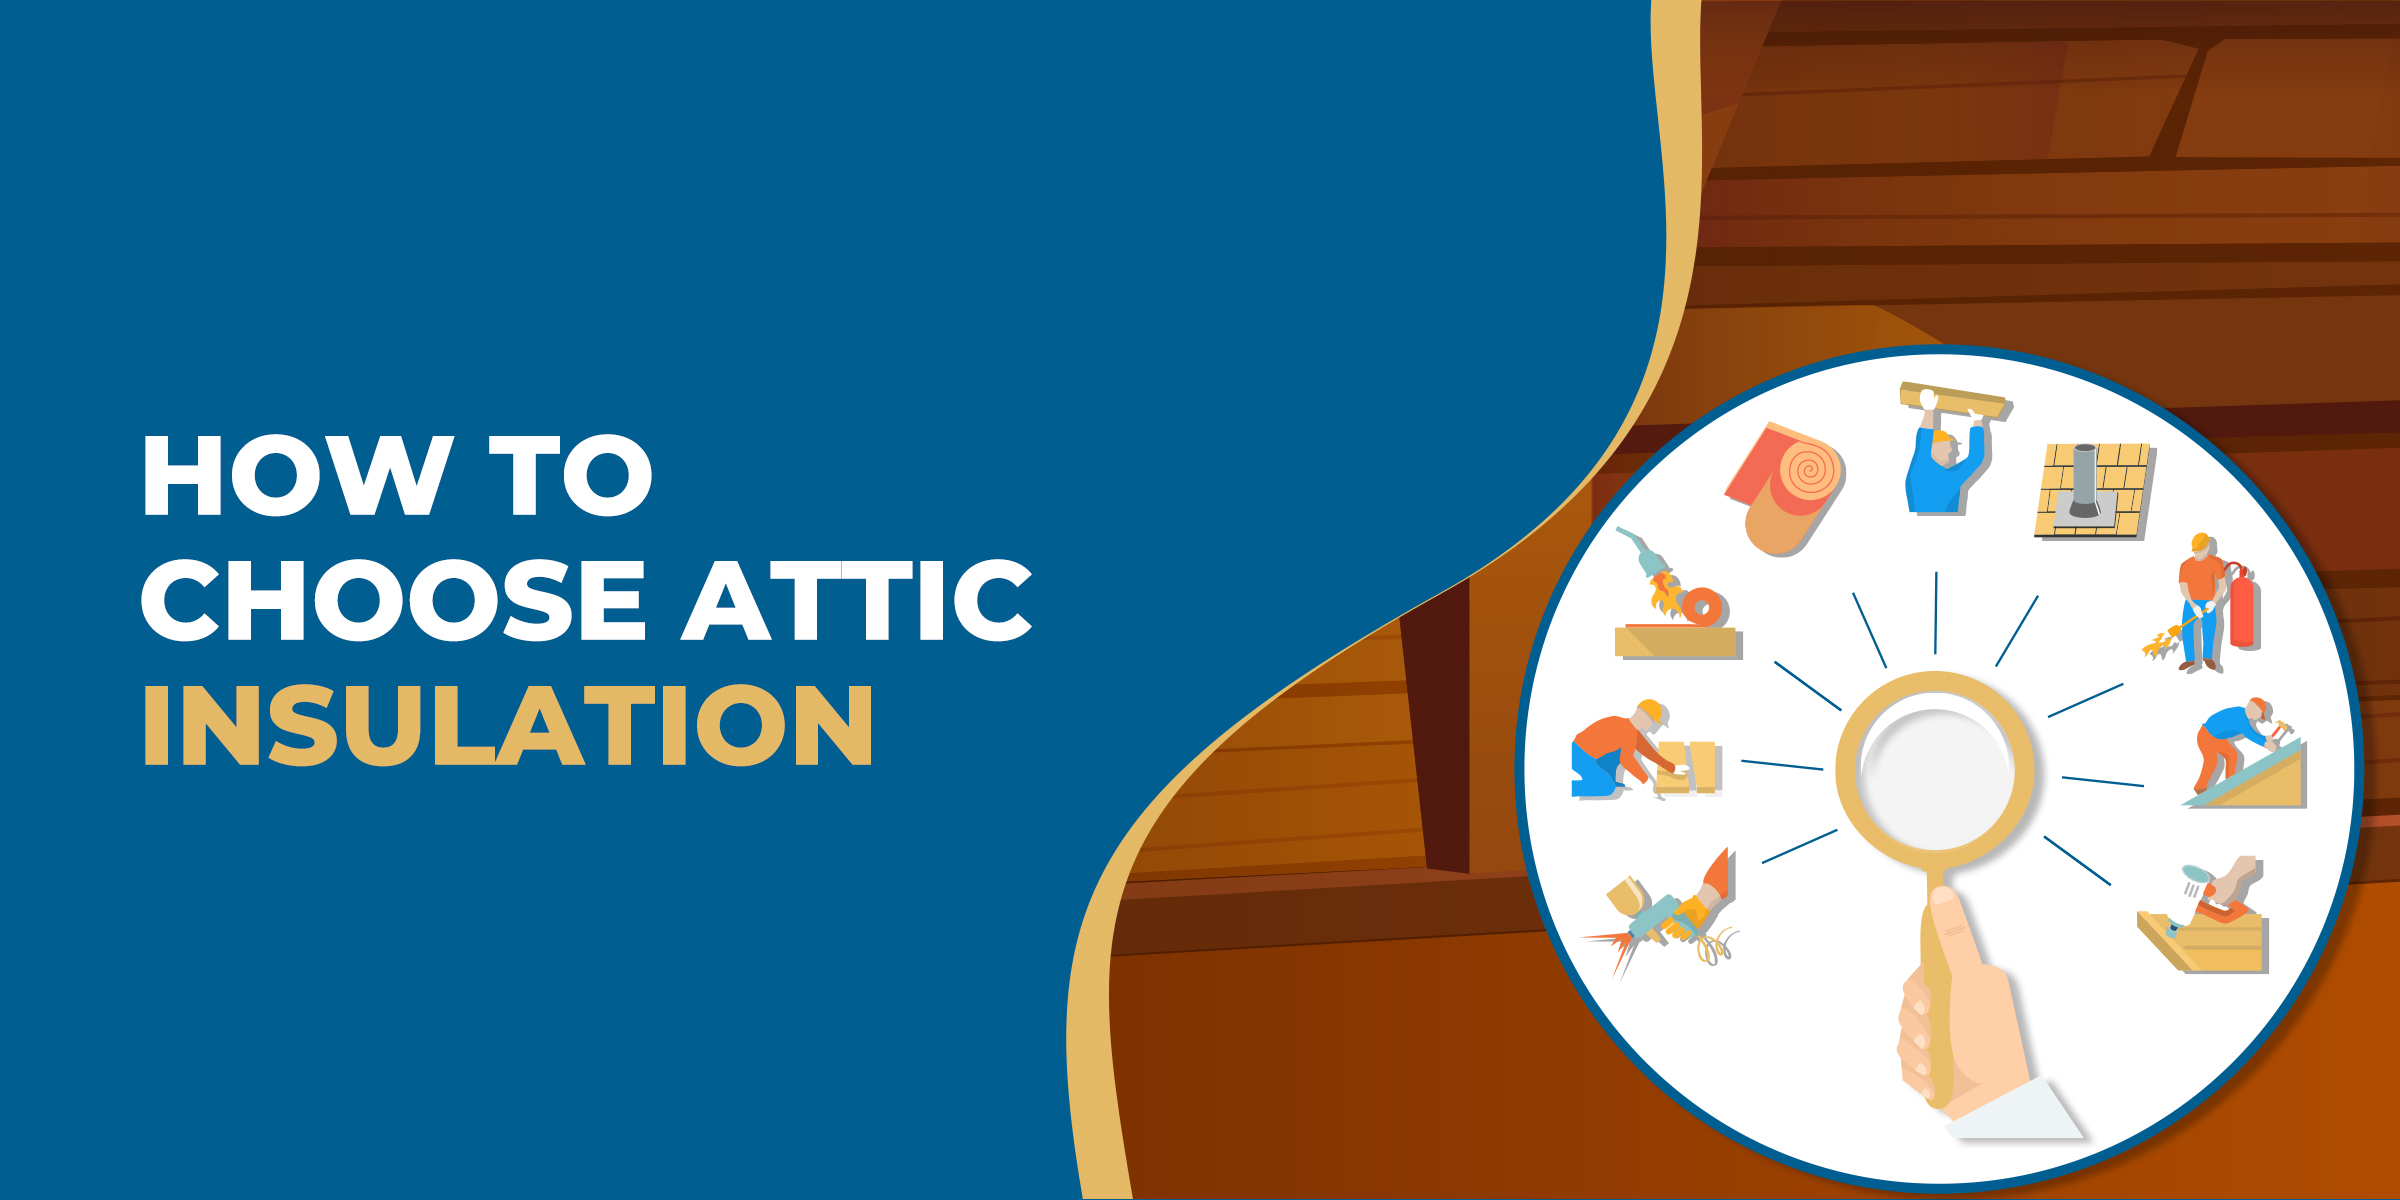 How to Choose Attic Insulation